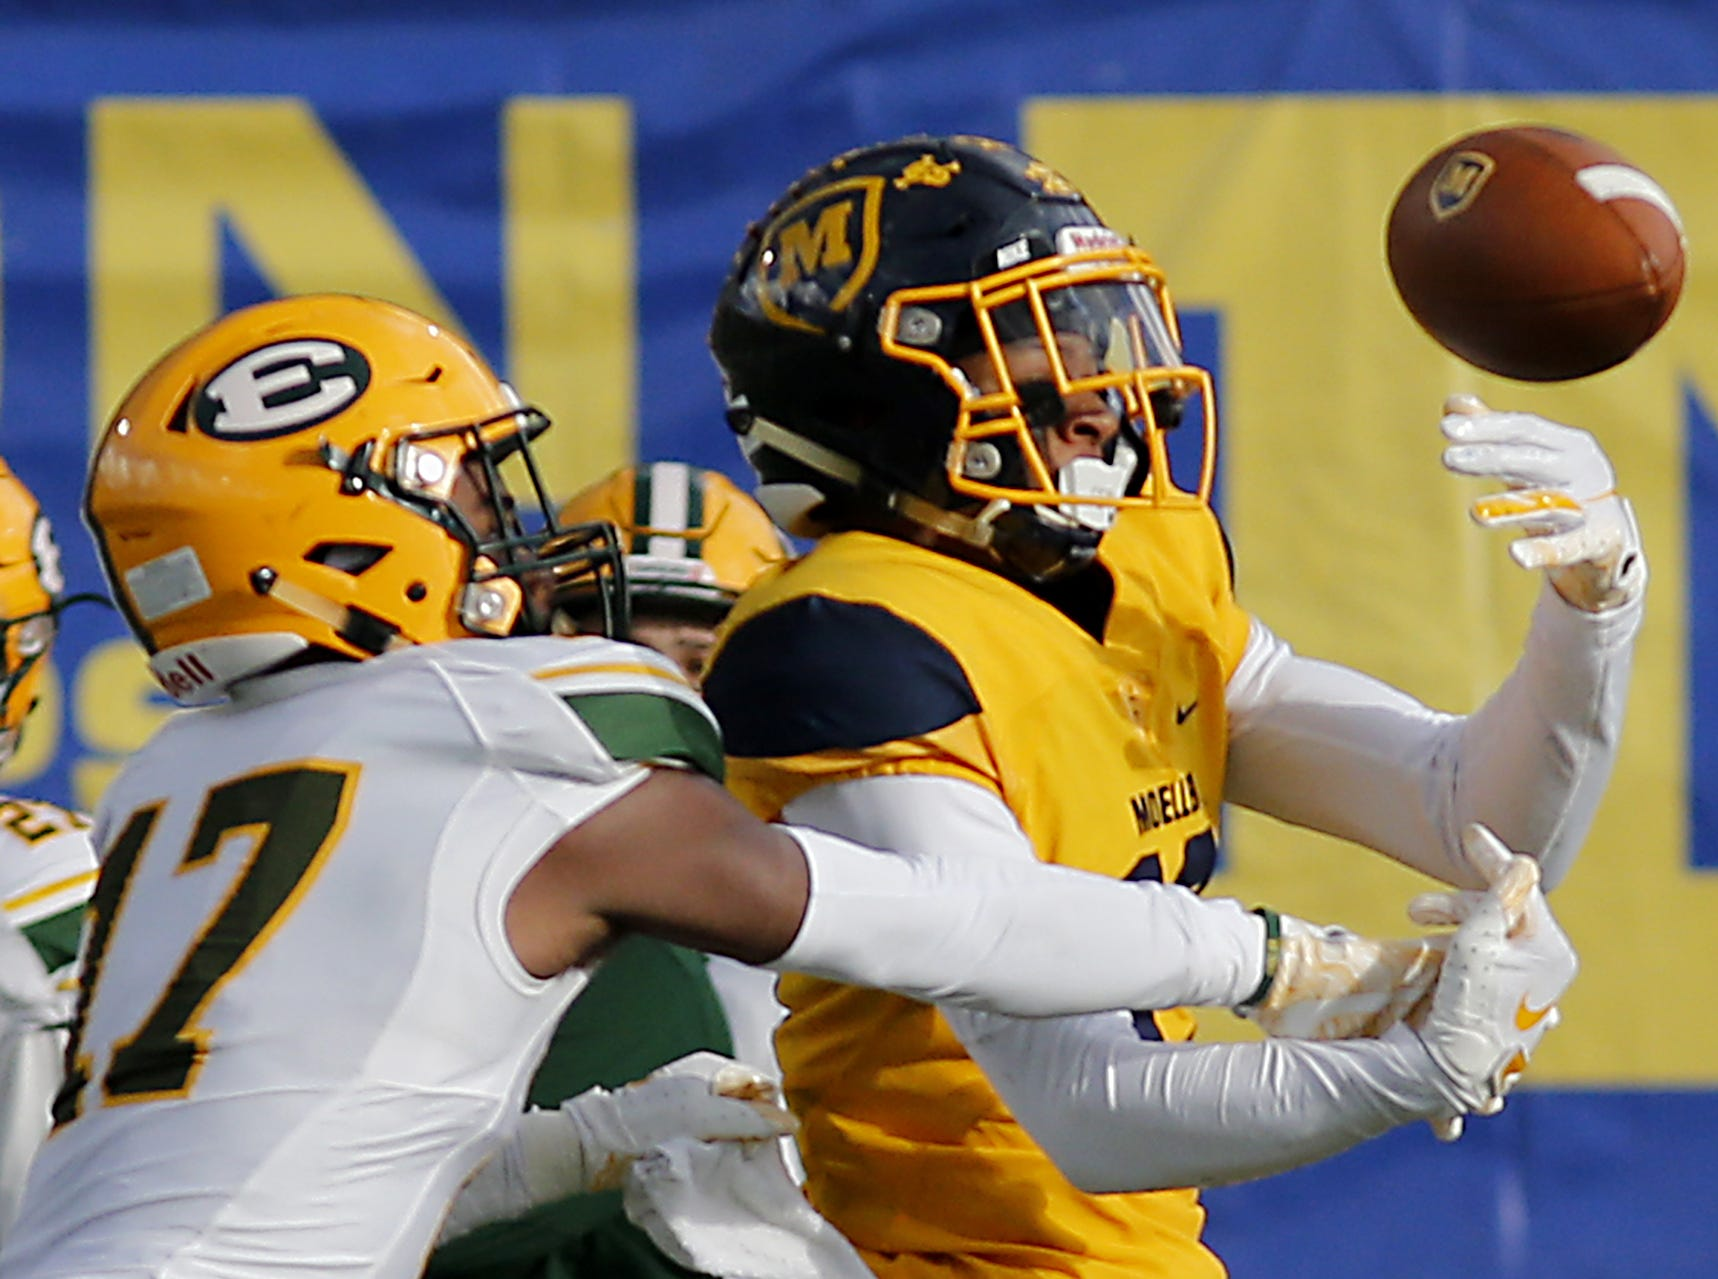 Lakewood St. Edward defensive back Logan Nash breaks up the pass meant for Moeller wide receiver Carrington Valentine during their game at Lockland Saturday, Oct. 20, 2018.